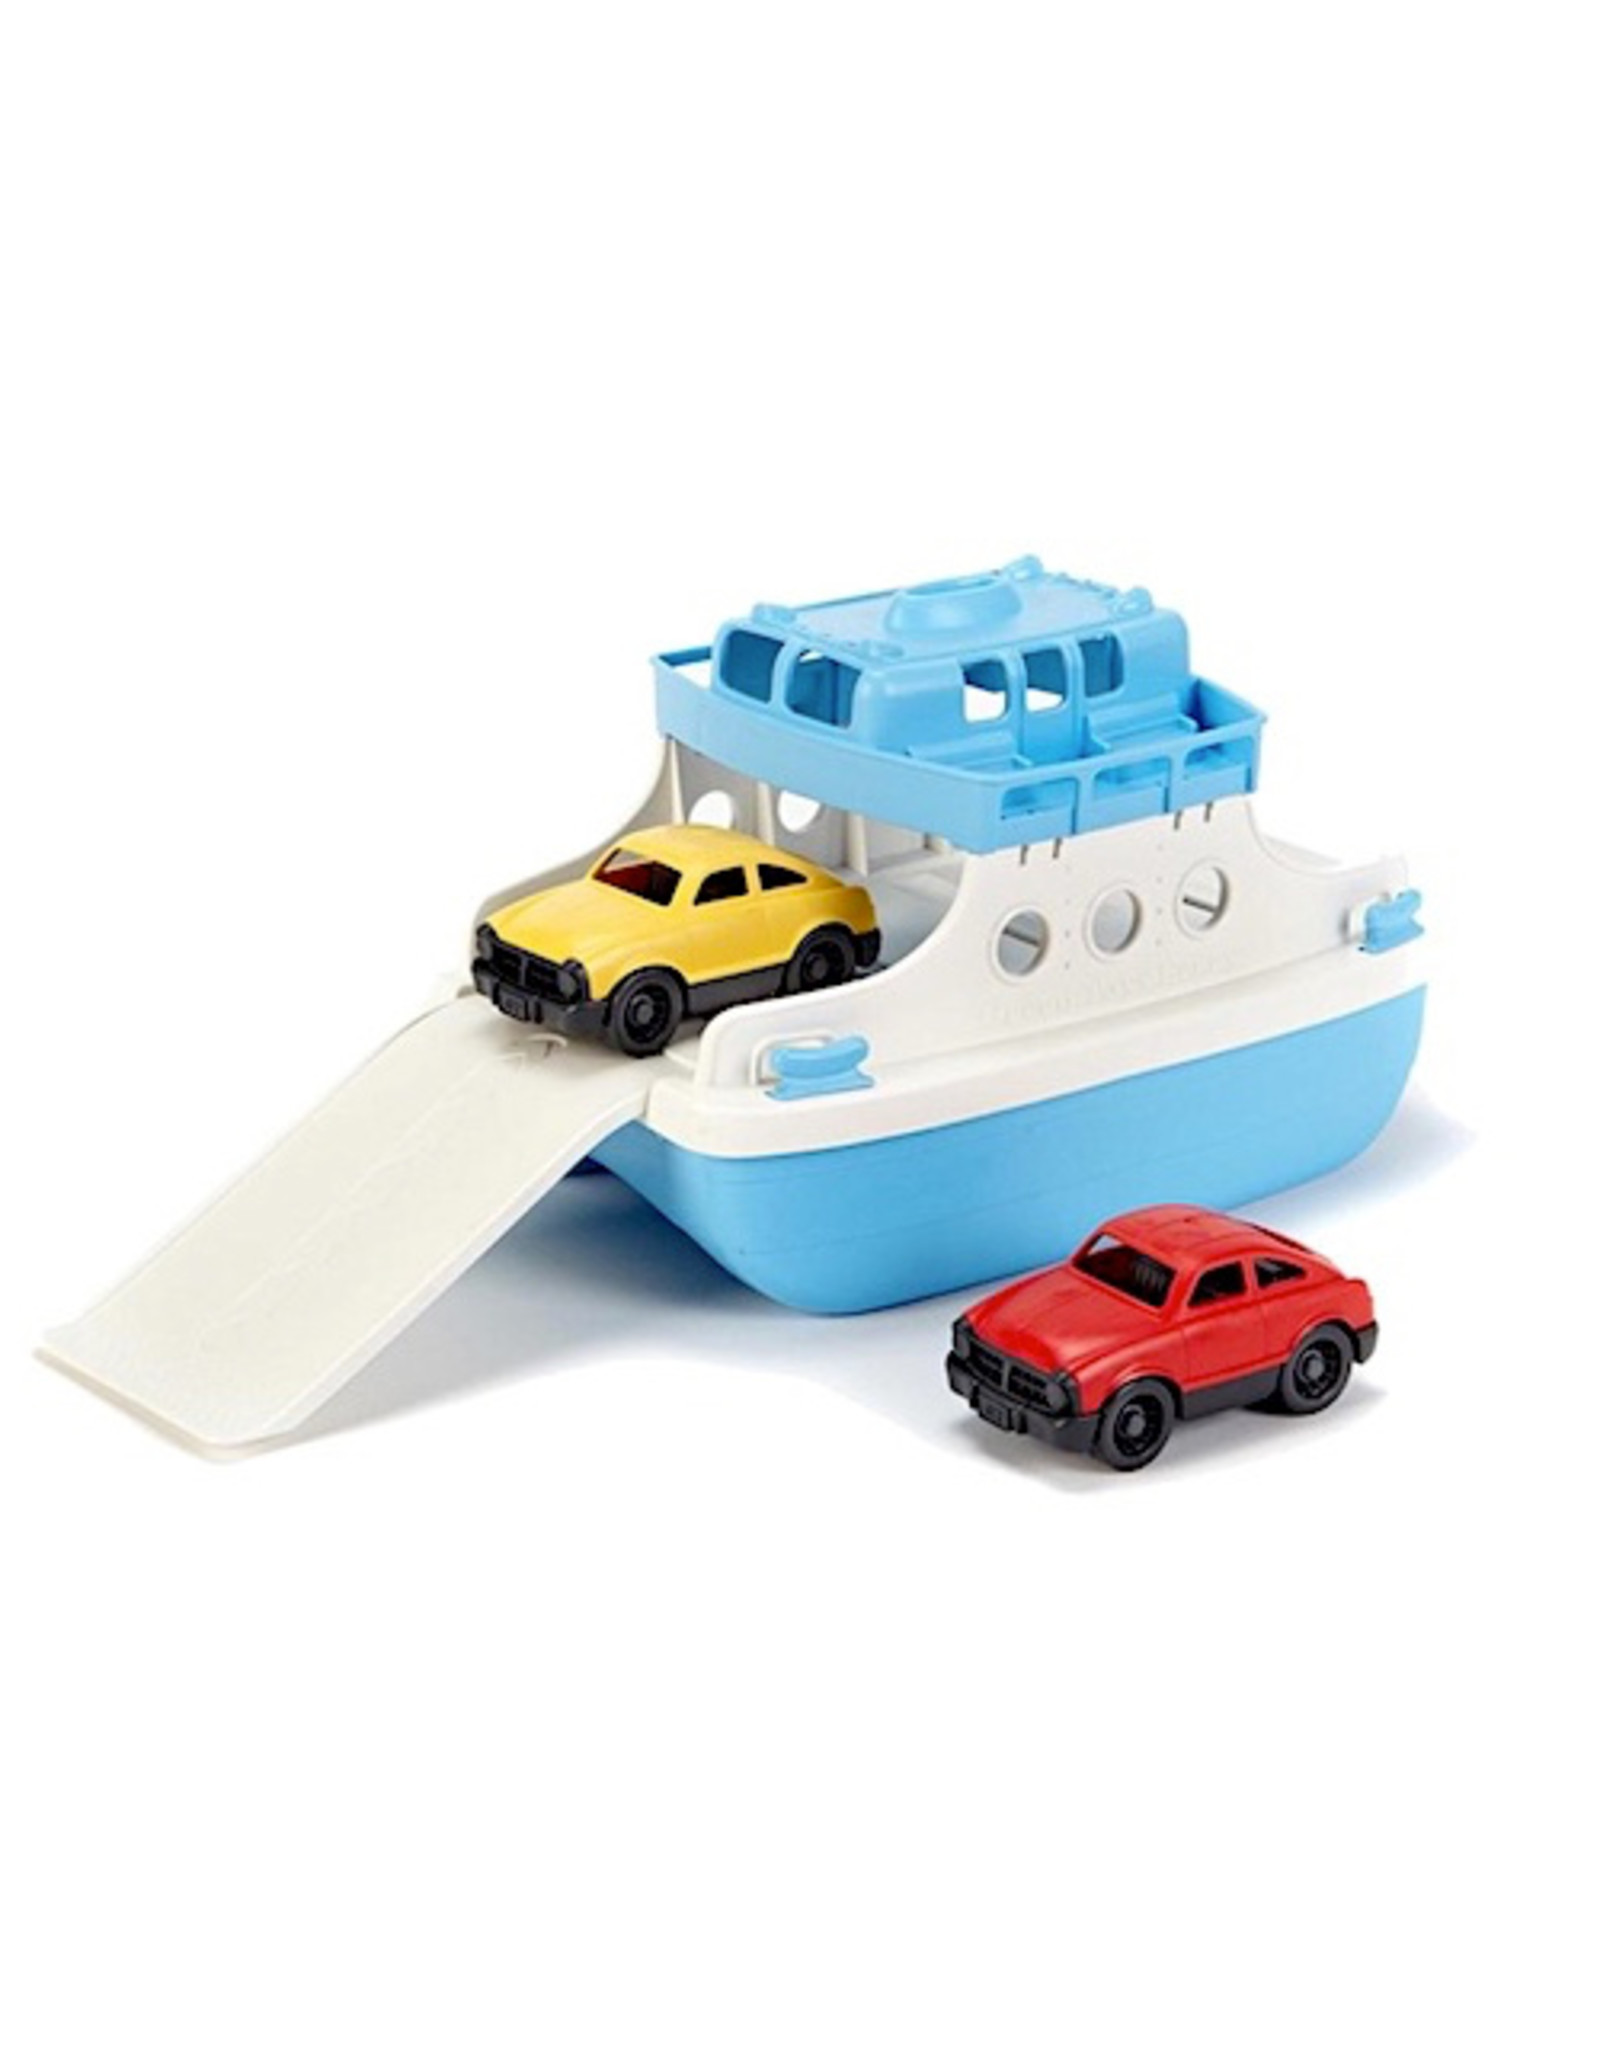 Green Toys Ferry Boat - Blue/White